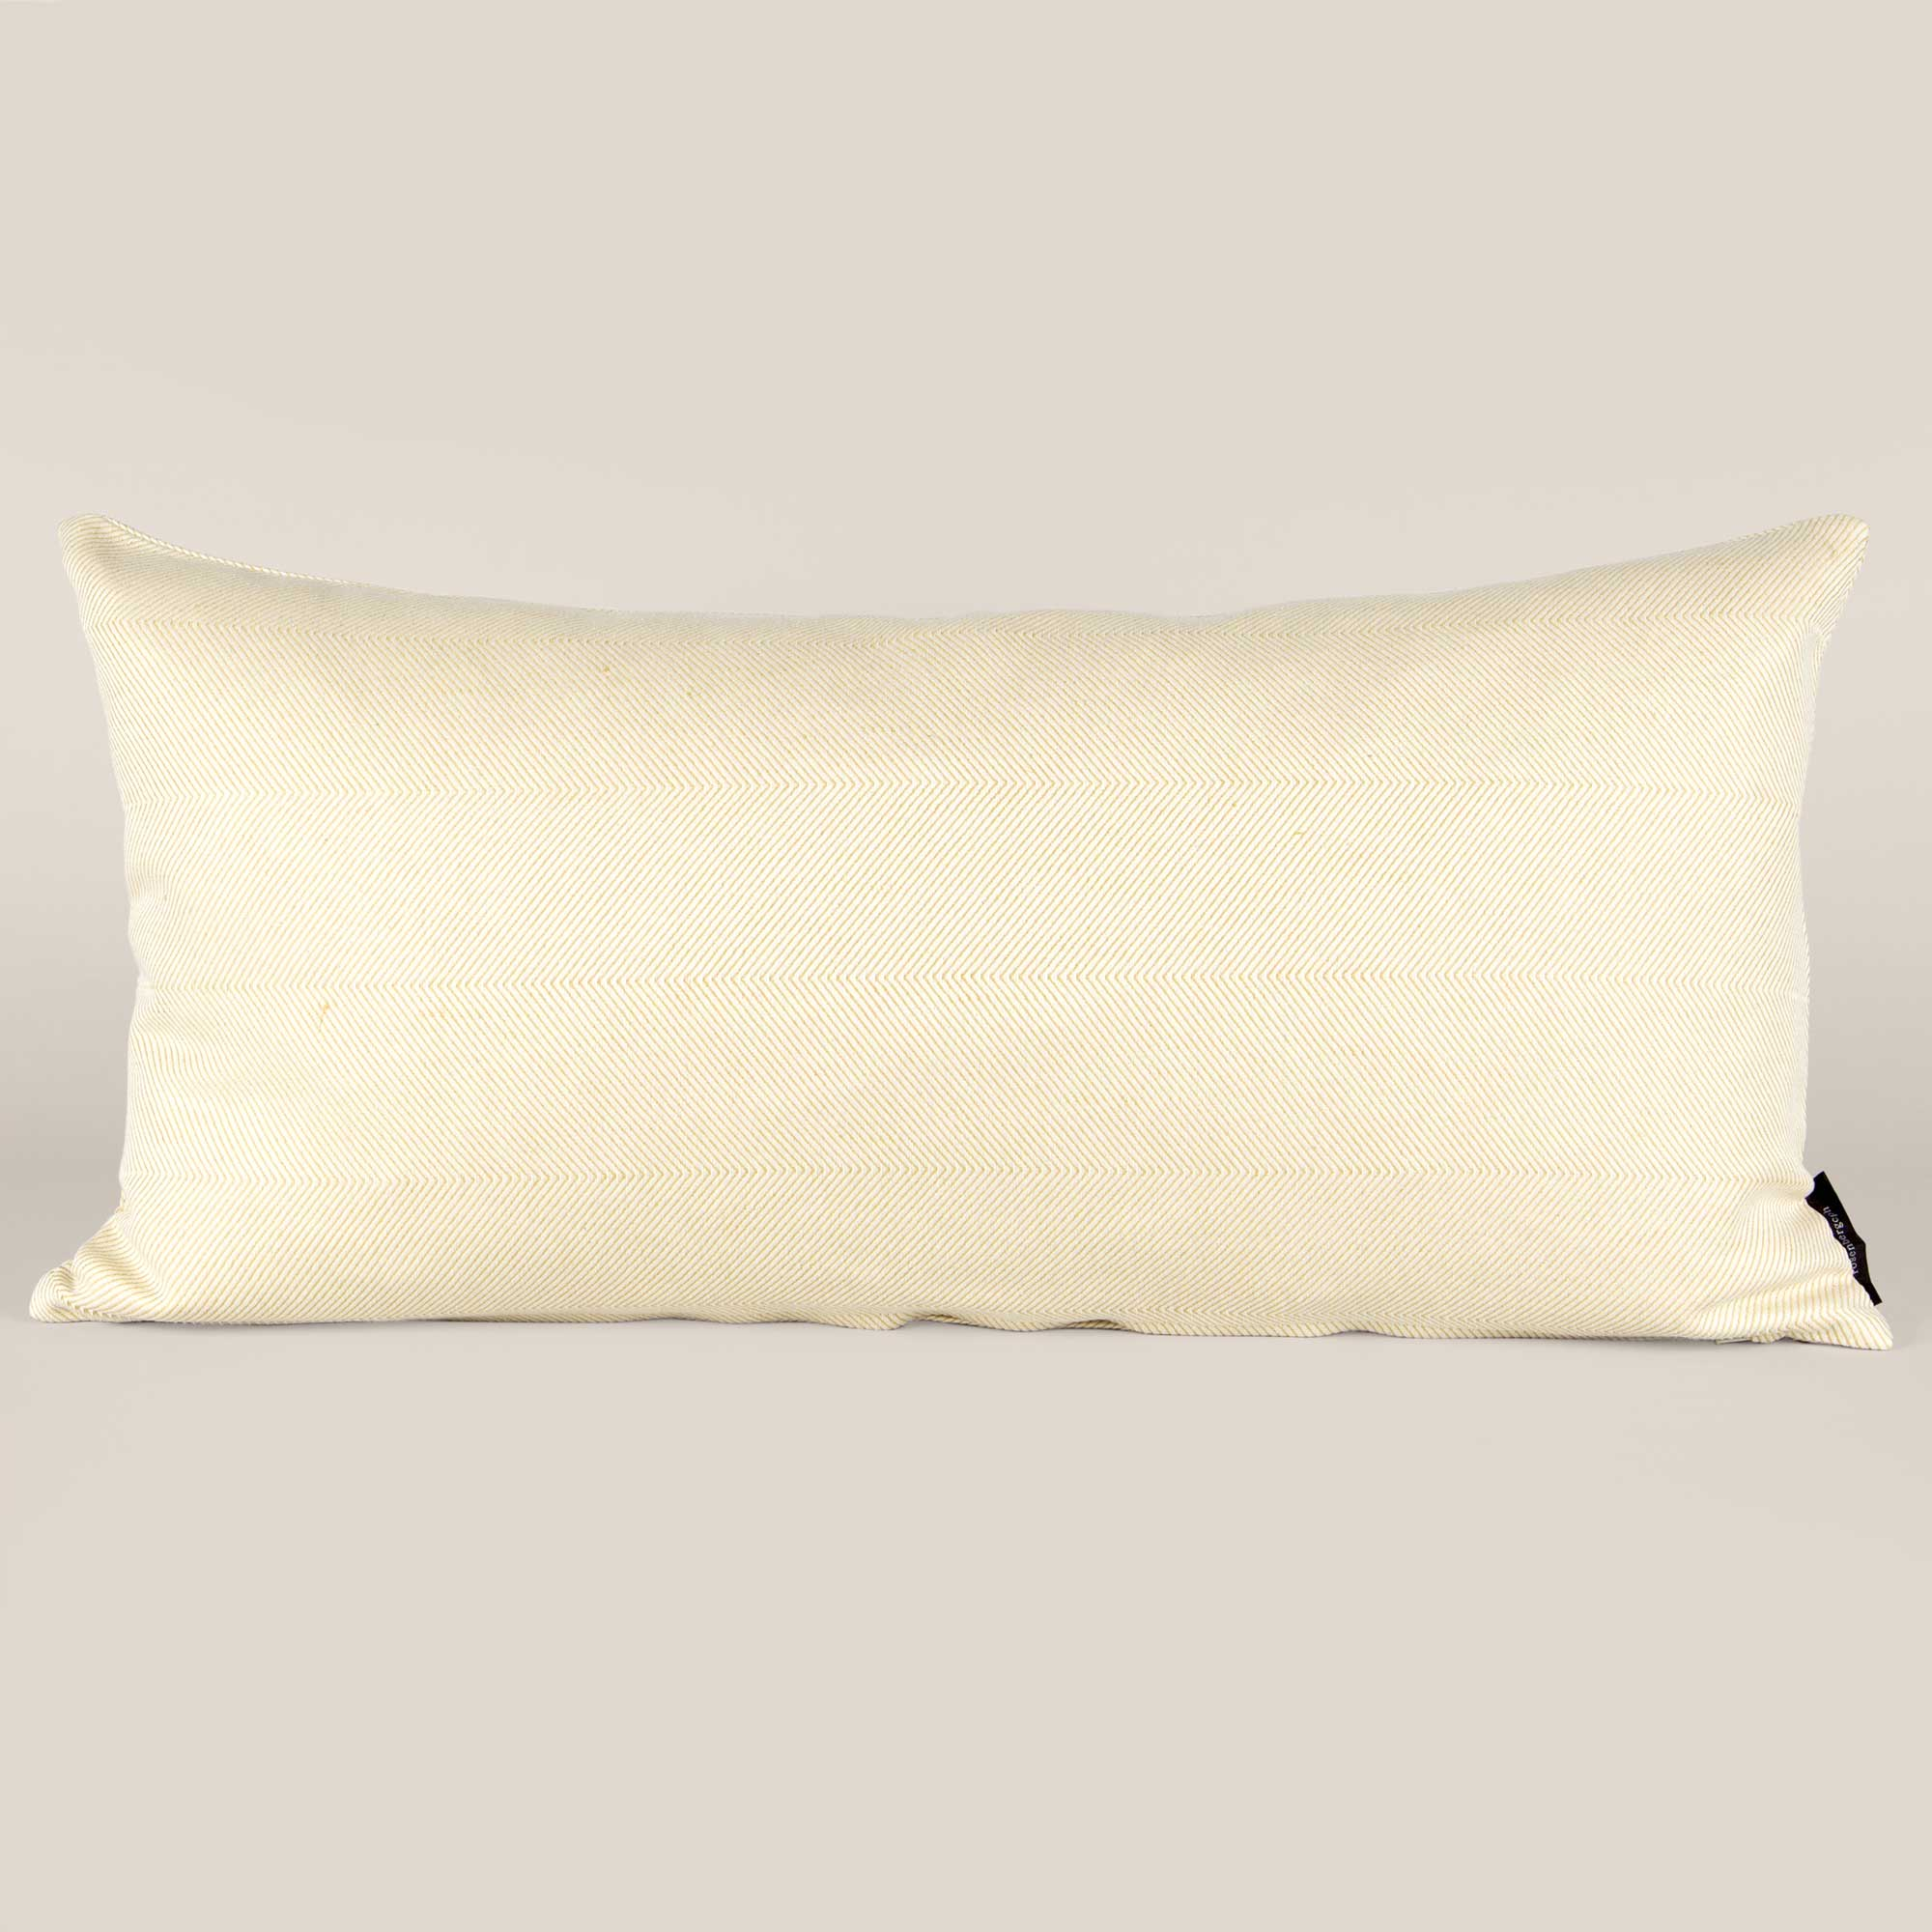 Rectangular cushion linen/cotton light hay yellow design by Anne Rosenberg, RosenbergCph